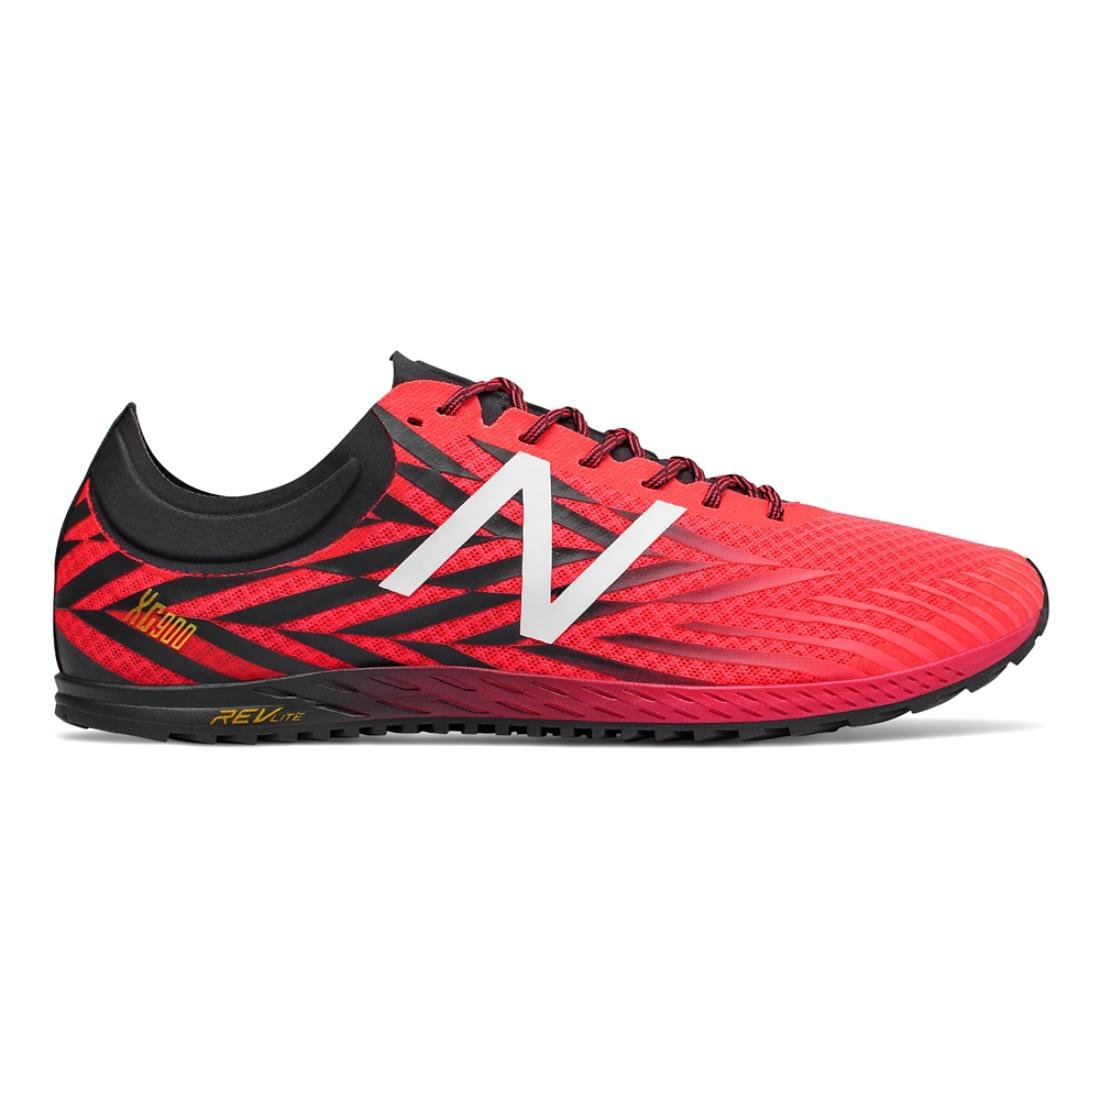 New Balance Men's 9004 Cross Country Running Shoe B075R78H6F 12 D(M) US|Bright Cherry/Black